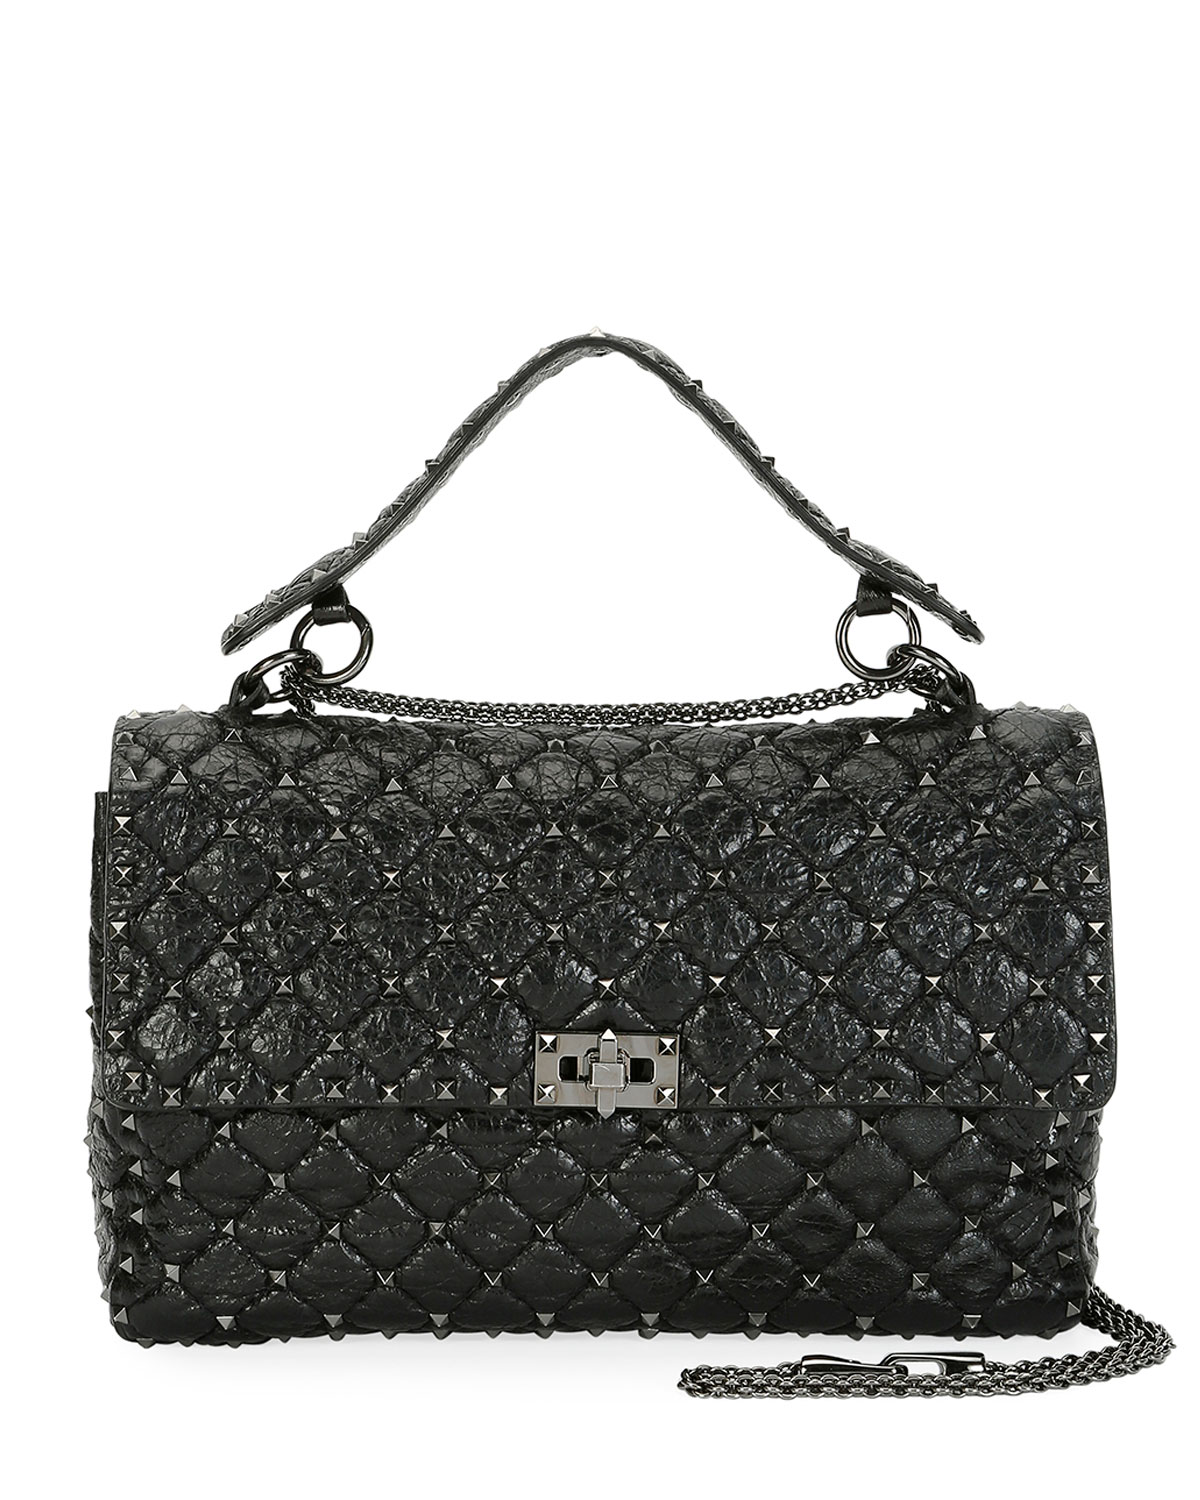 cc718e727b9 Valentino Garavani Rockstud Spike Large Quilted Leather Shoulder Bag ...